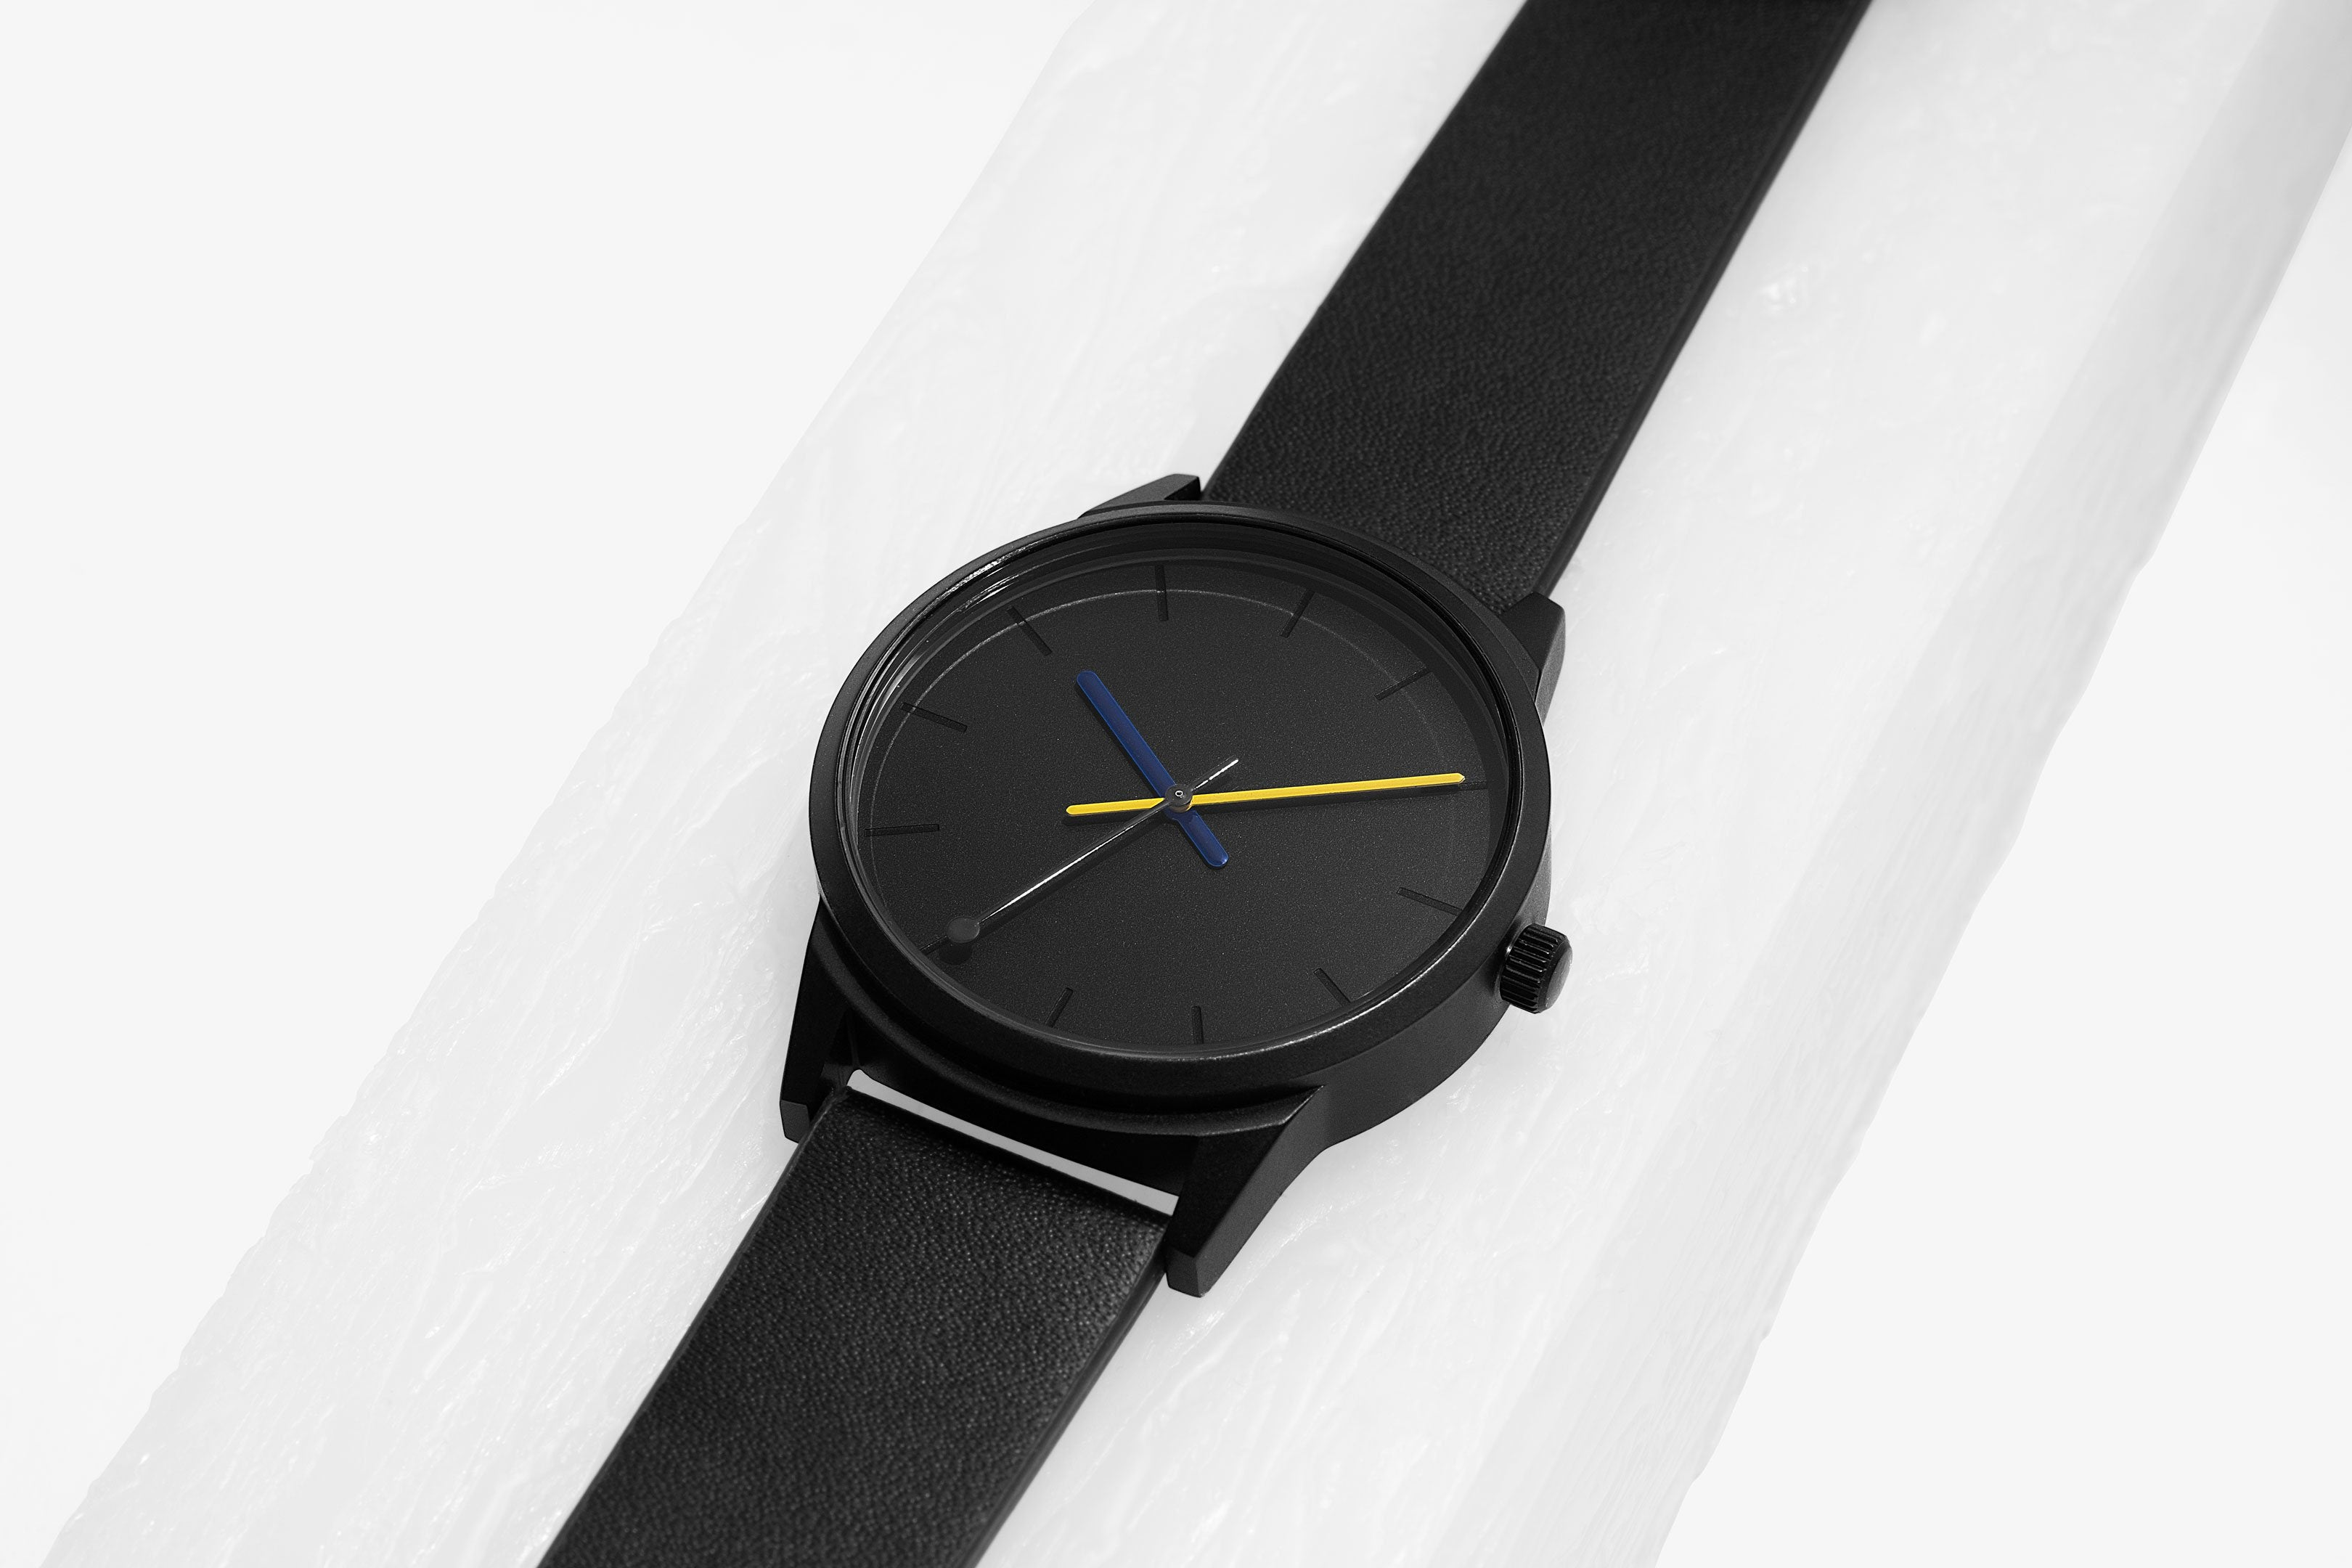 //cdn.shopify.com/s/files/1/0879/6650/products/breda-poketo-5021a-spectra-black-leather-band-collaboration-watch-front-holiday-2018-1_1024x1024.jpg?v=1579907971